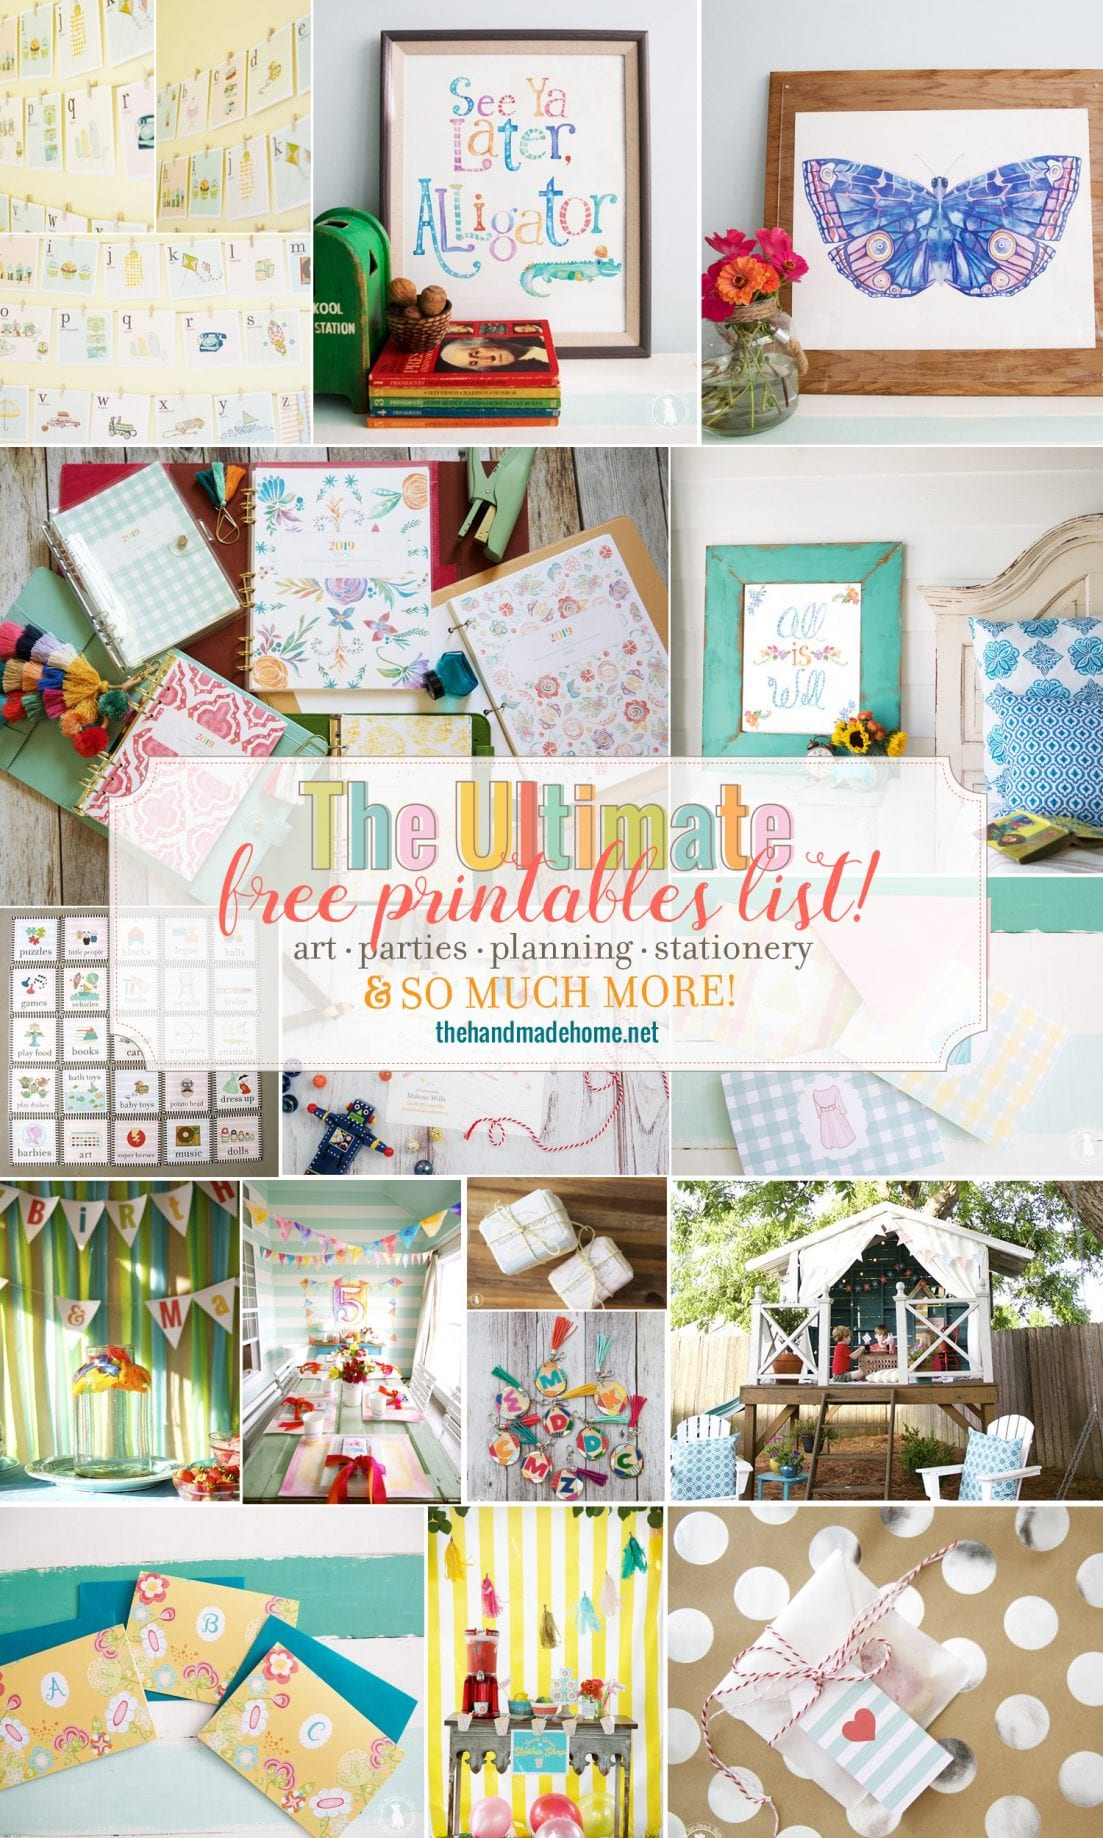 photograph regarding Free Printables for Home called no cost printables - all scenarios and some on your own havent consideration of.